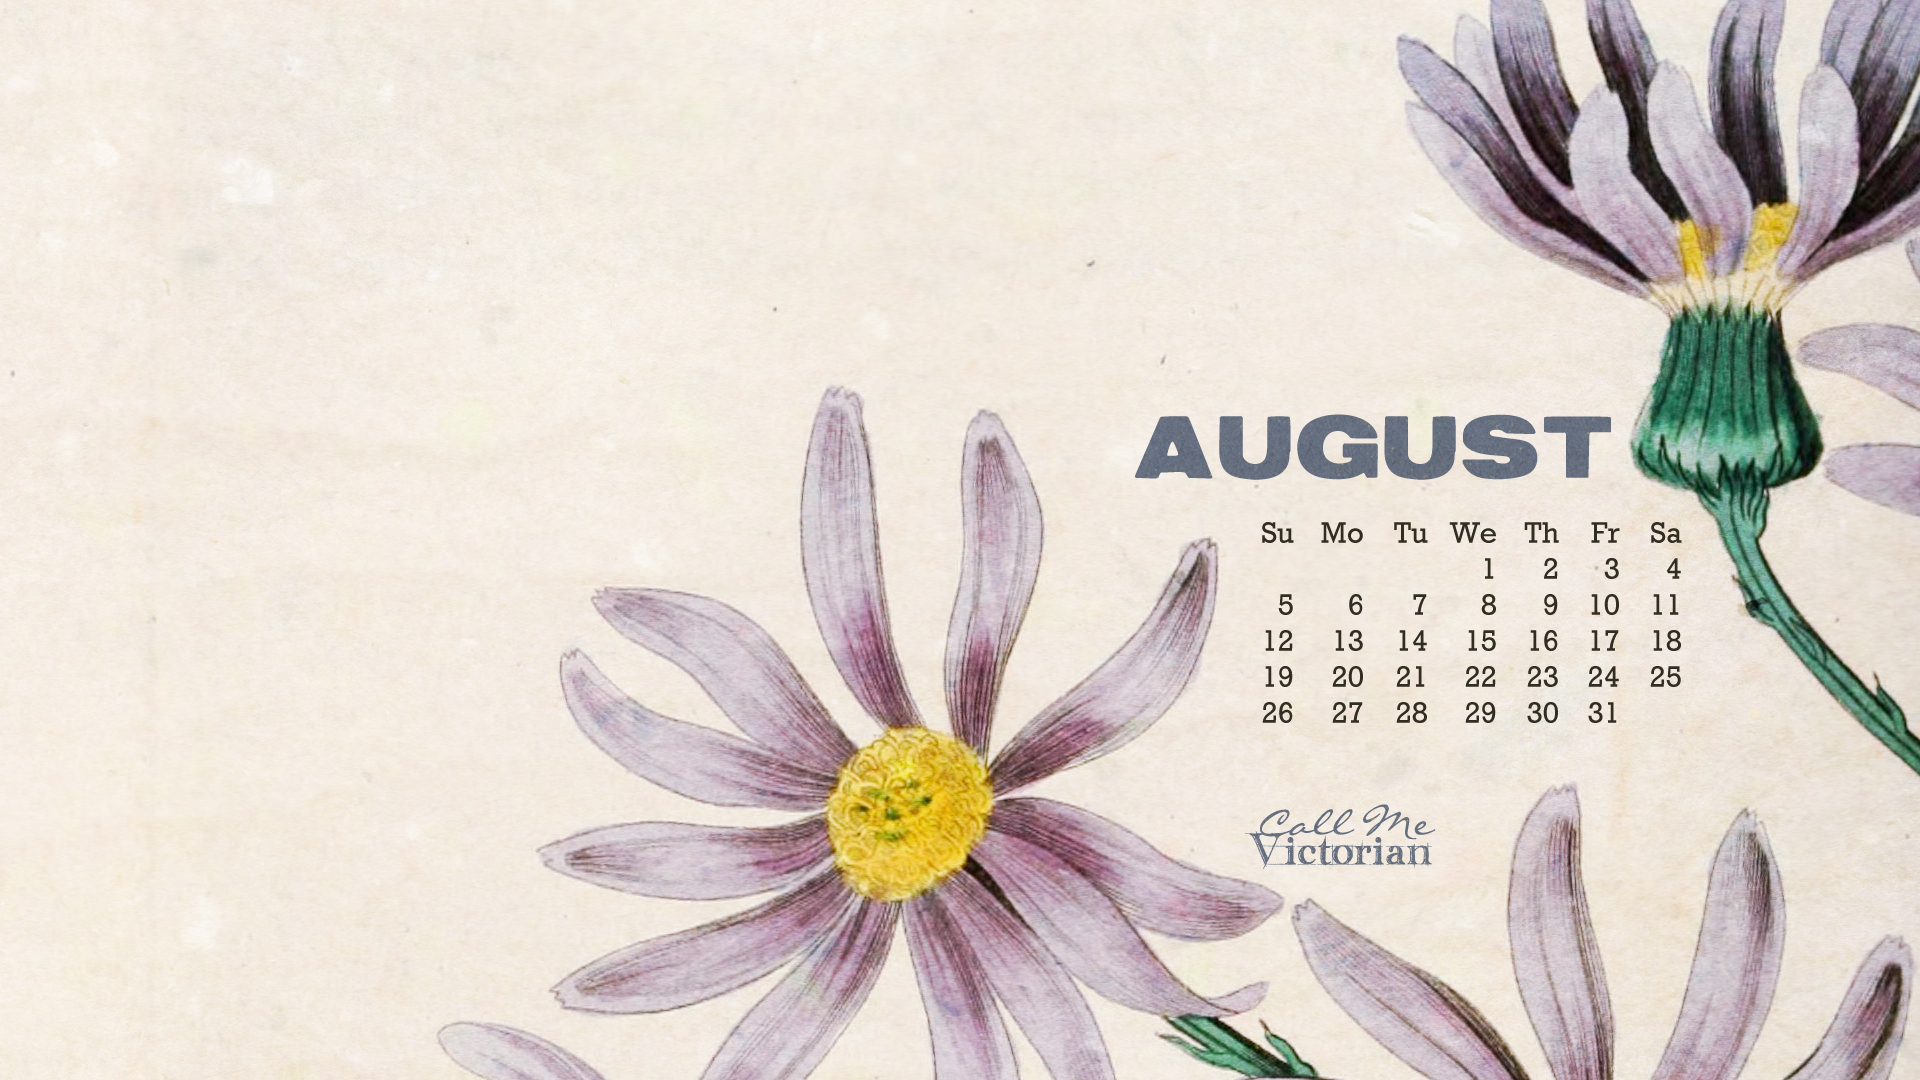 August 2012 calendar clipart clipart freeuse library August 2012 calendar clipart - ClipartFest clipart freeuse library